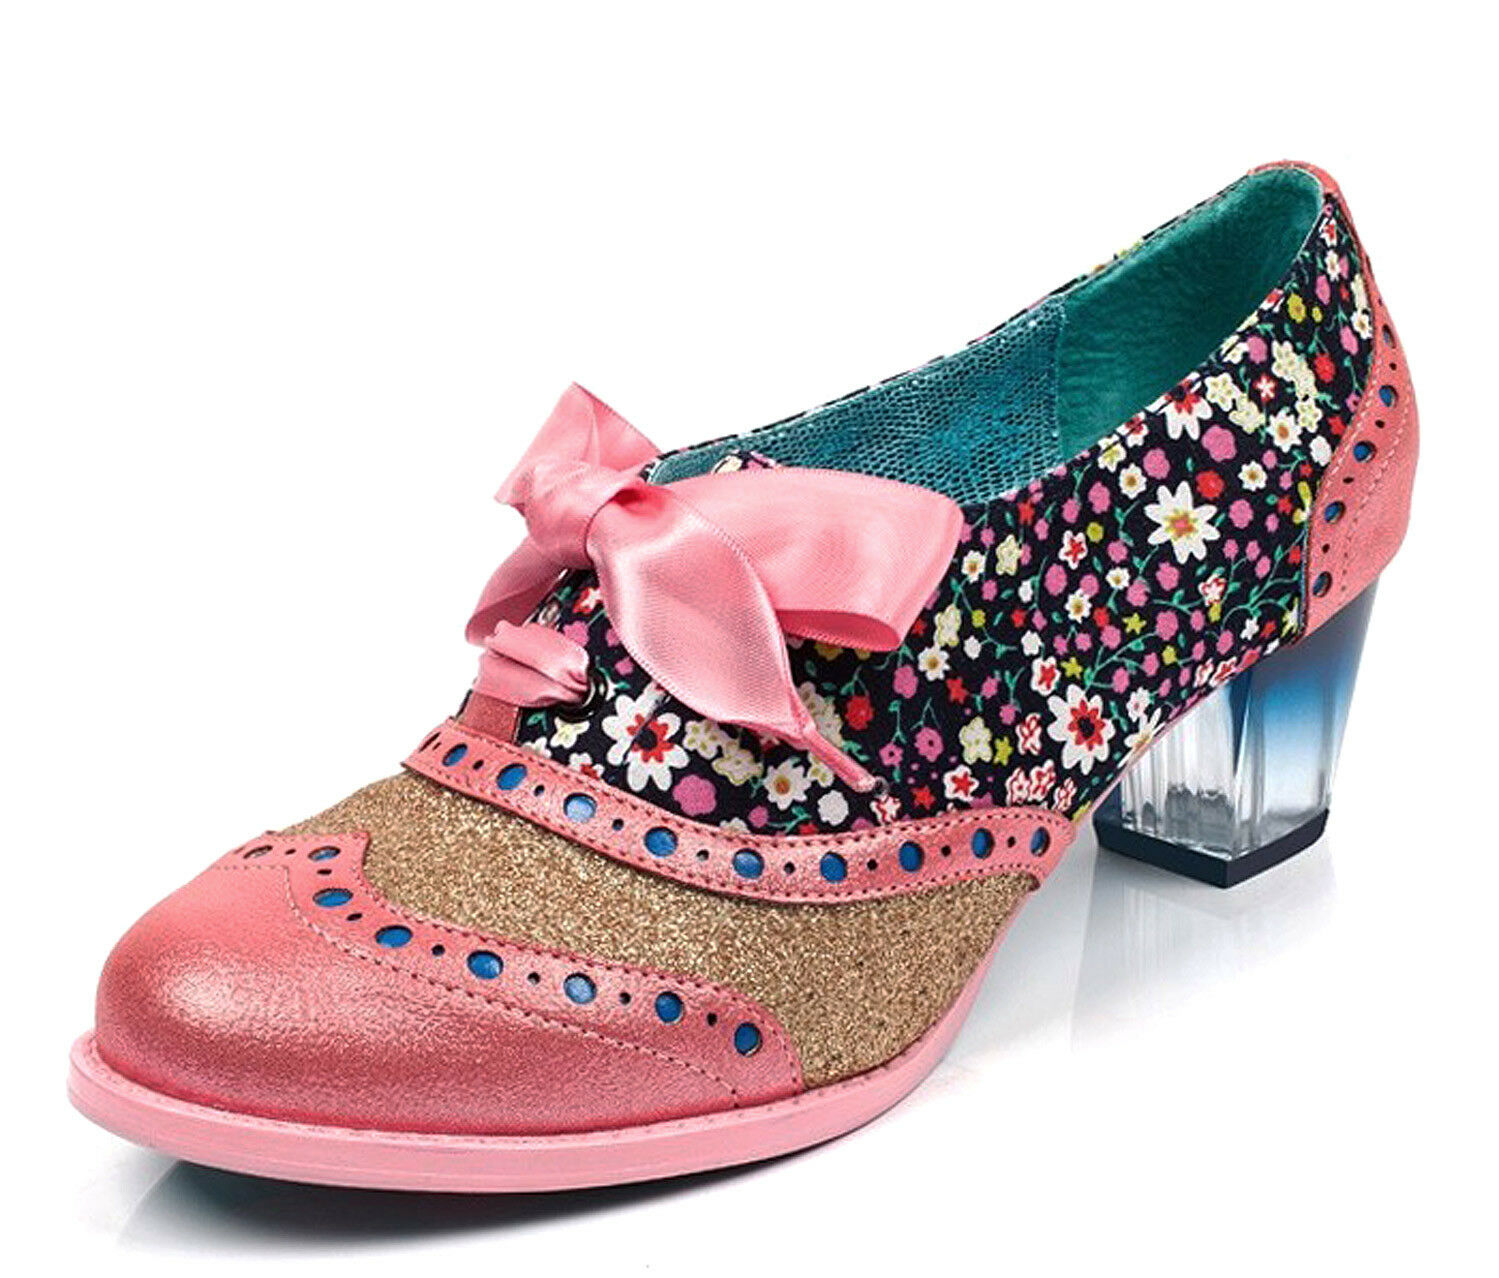 Poetic Licence NEW Corporate Beauty pink floral 3-9 mid heel brogue schuhe Größes 3-9 floral f133ad